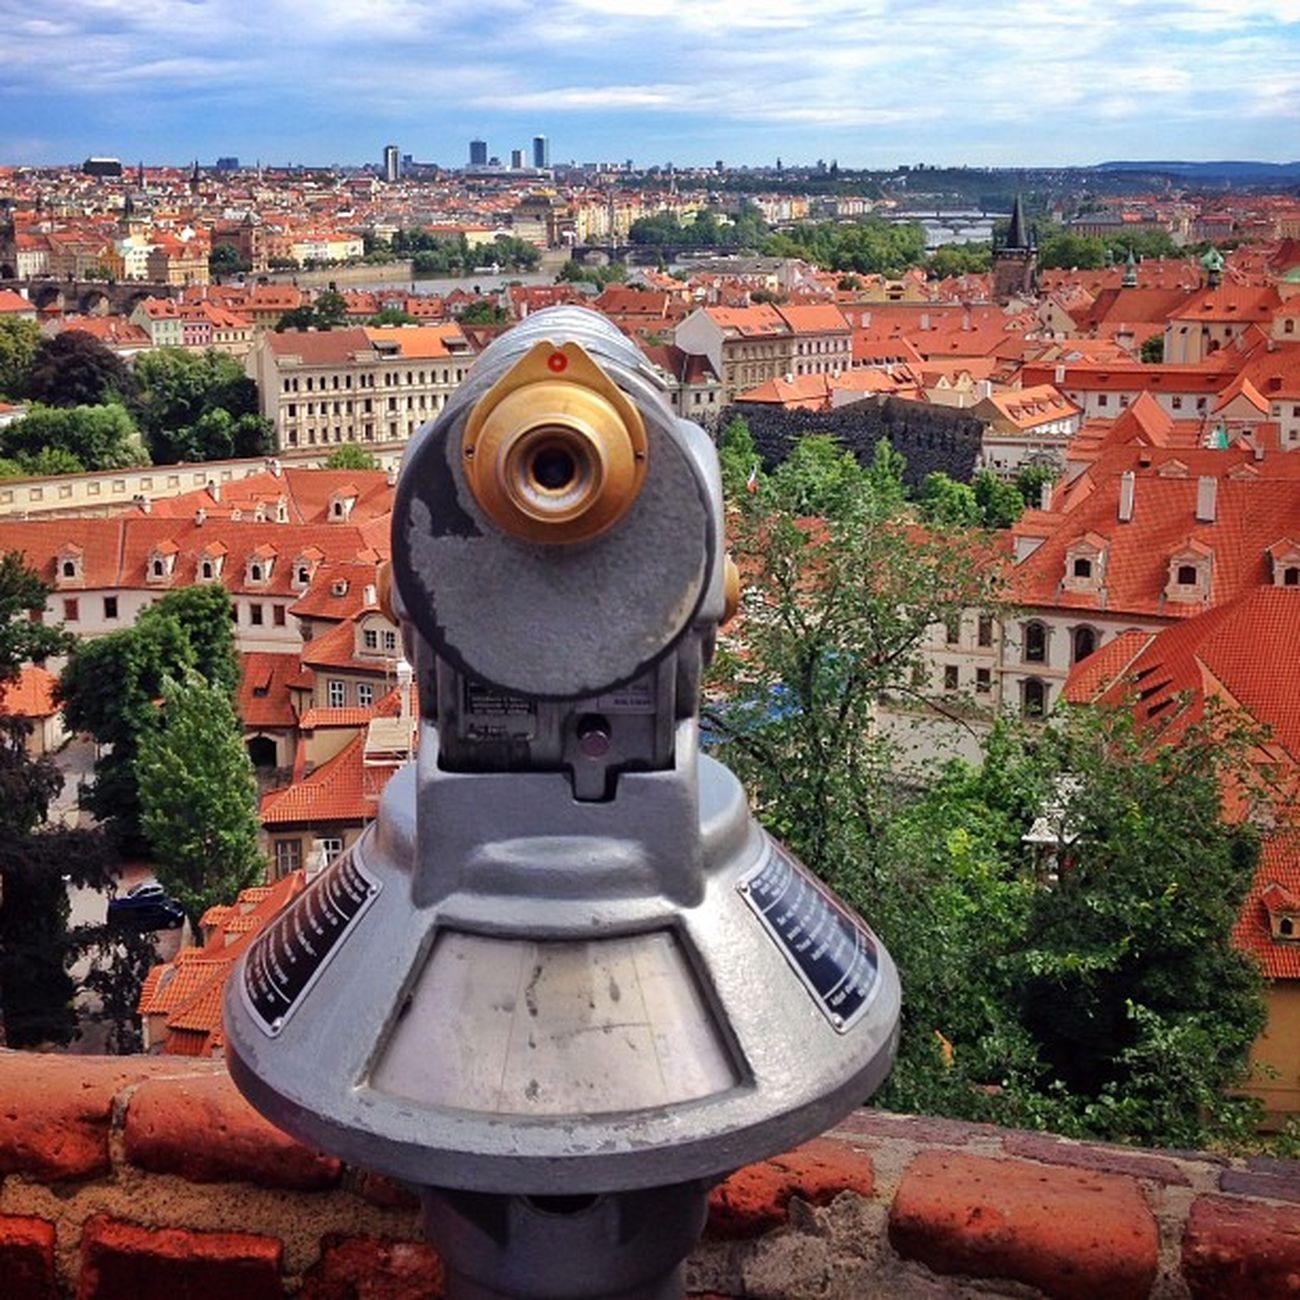 Get a closer look at #Prague #roofs ☀️☀️⛪️? #praguecastle #castle #allshots_ #czech #gang_family #iccity #igers_cz #ic_cities #o2travel #summer Top_masters From_city Summer Pro_shooters Prague Igers_cz Igerscz Castle Iccity Czech Praguecastle Roofs Gang_family Allshots_ Ic_cities O2travel Printmyfeedhappydays Loveyoursummer